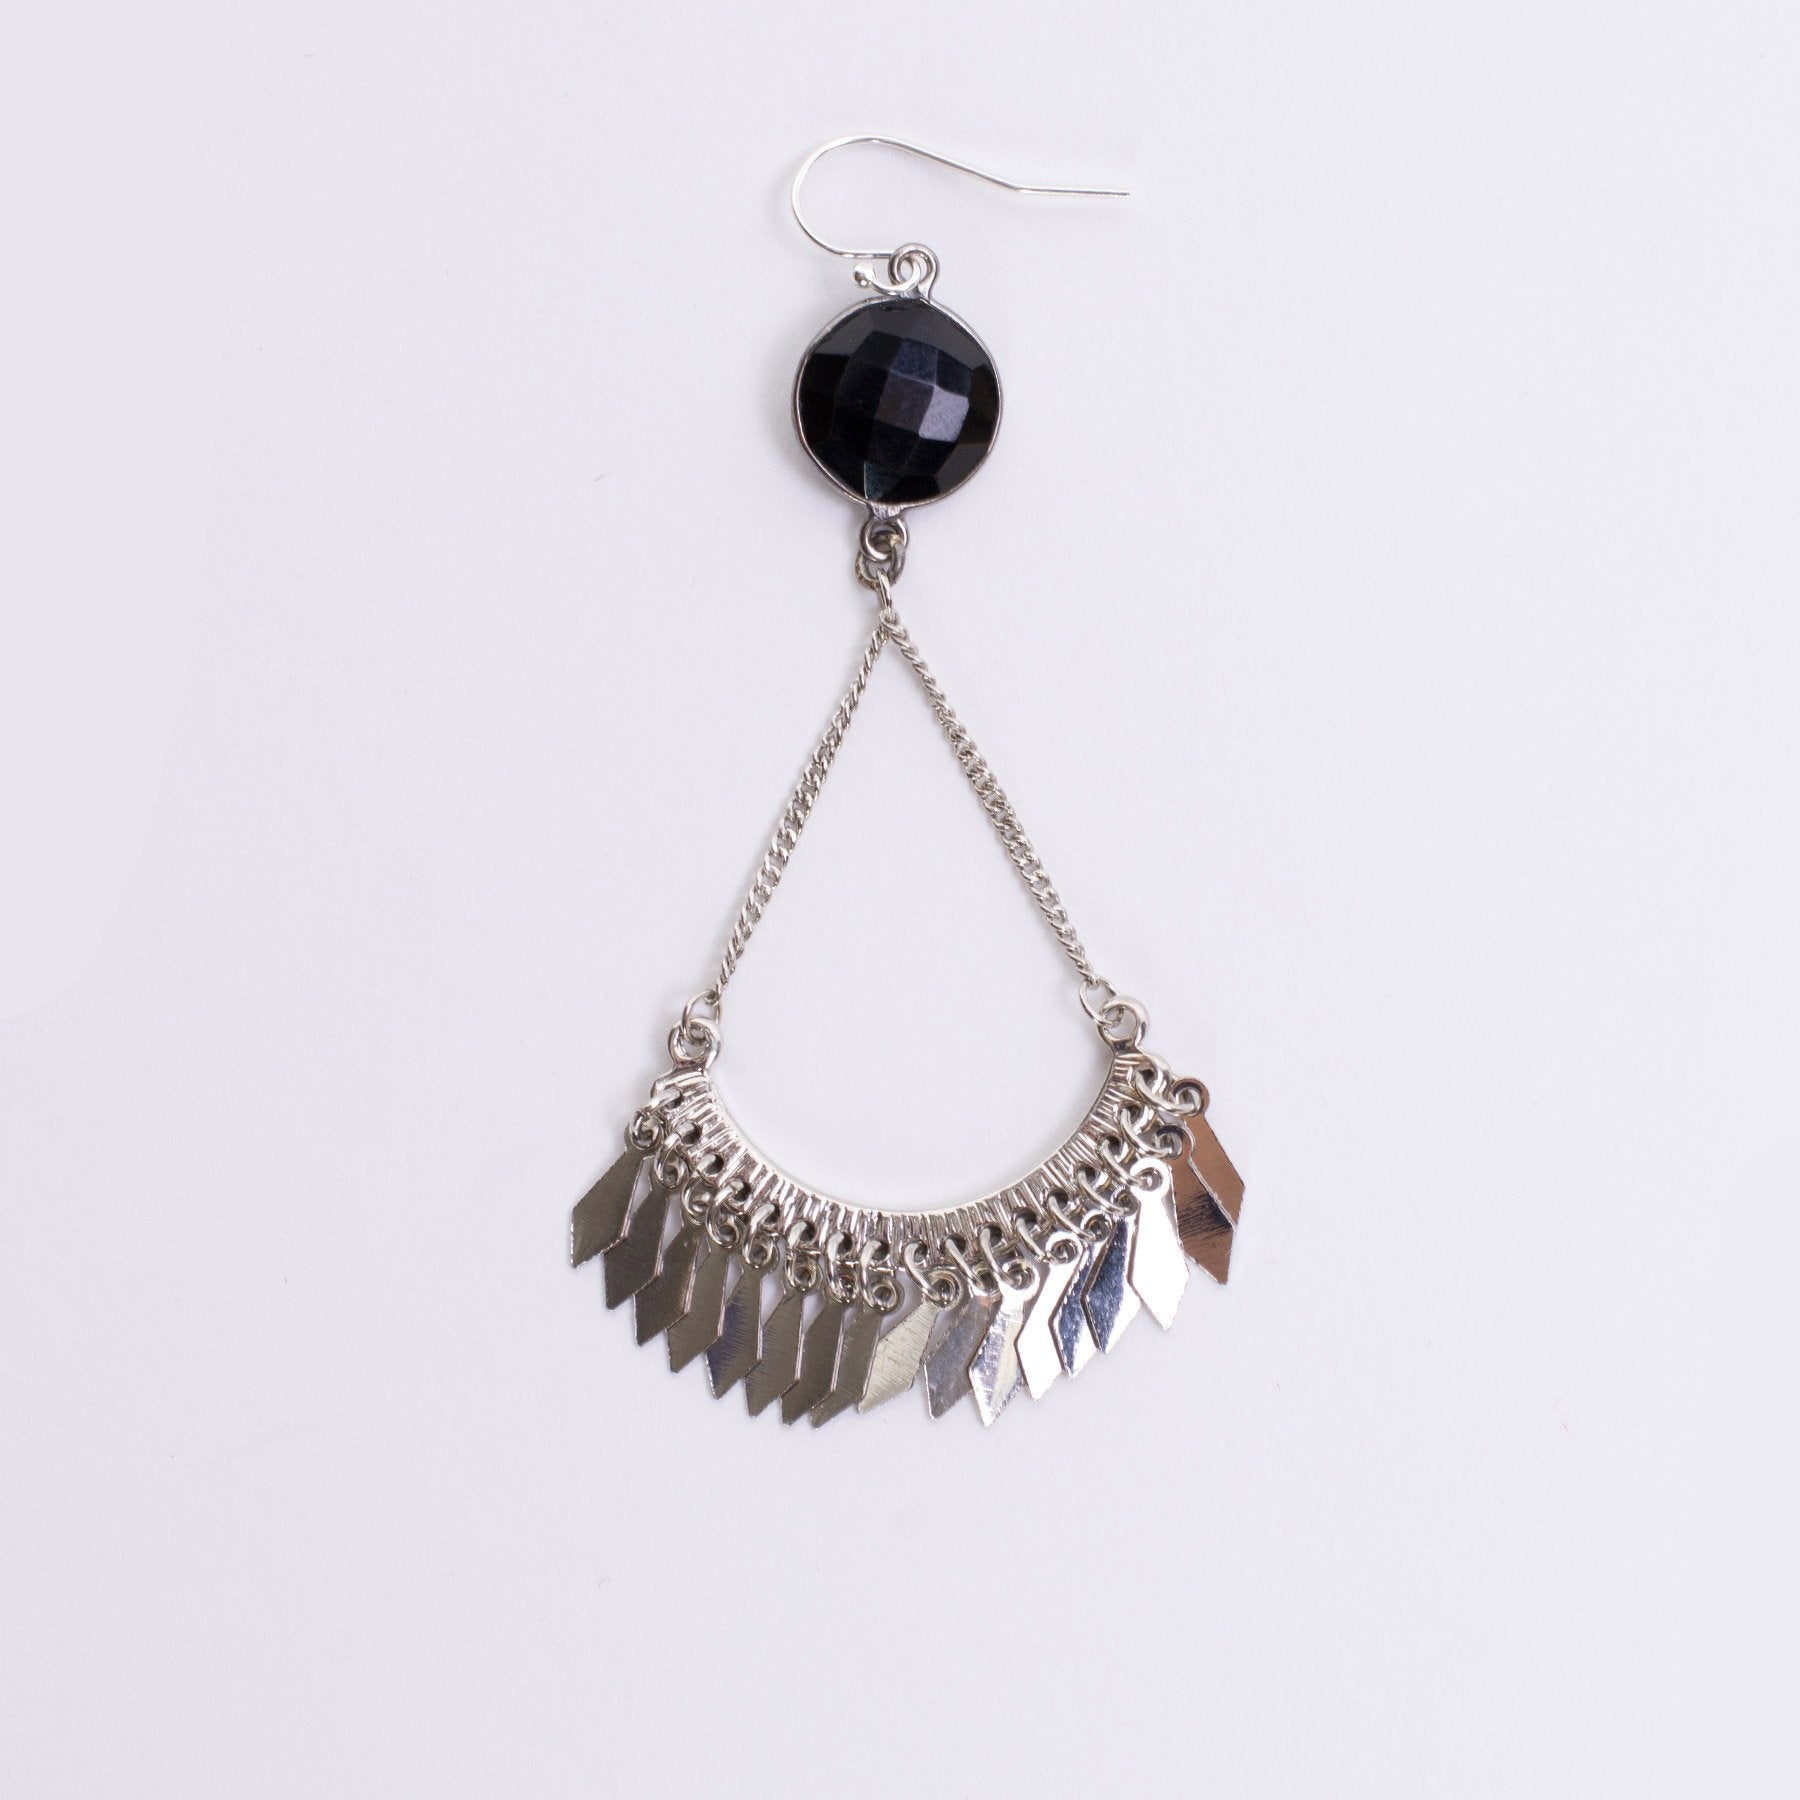 everyday products black onyx detail breeze drop essentials varna sterling e silver earrings with